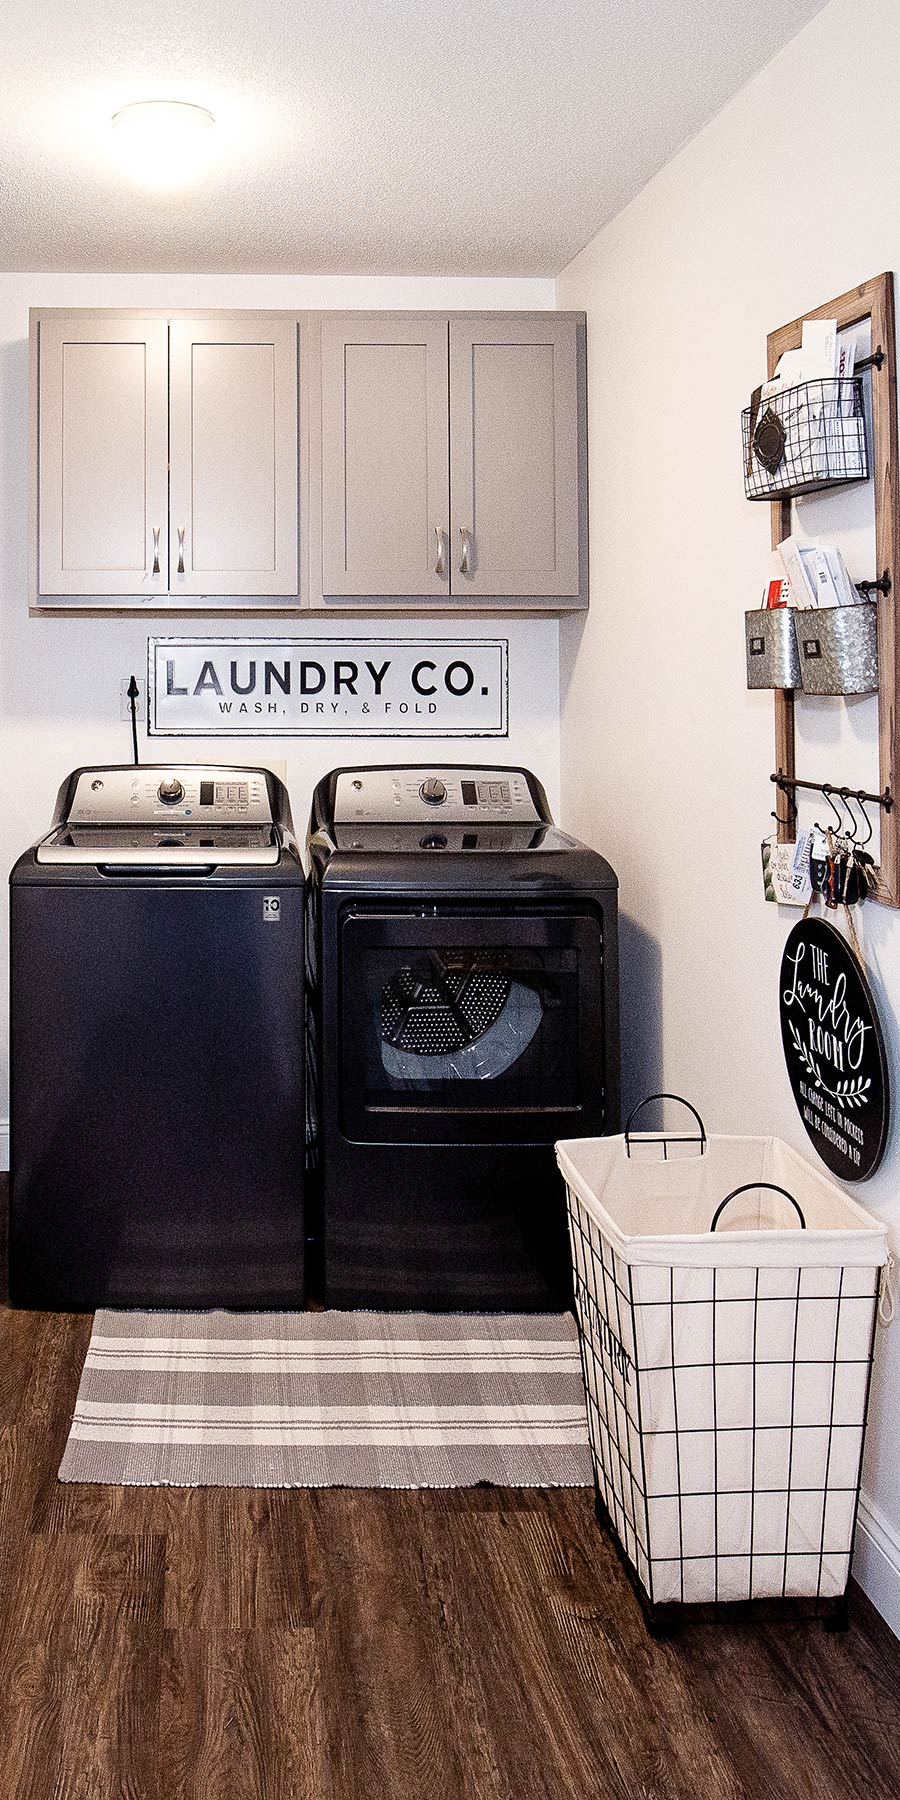 Custom Laundry Rooms | Studio 11 Cabinets & Design